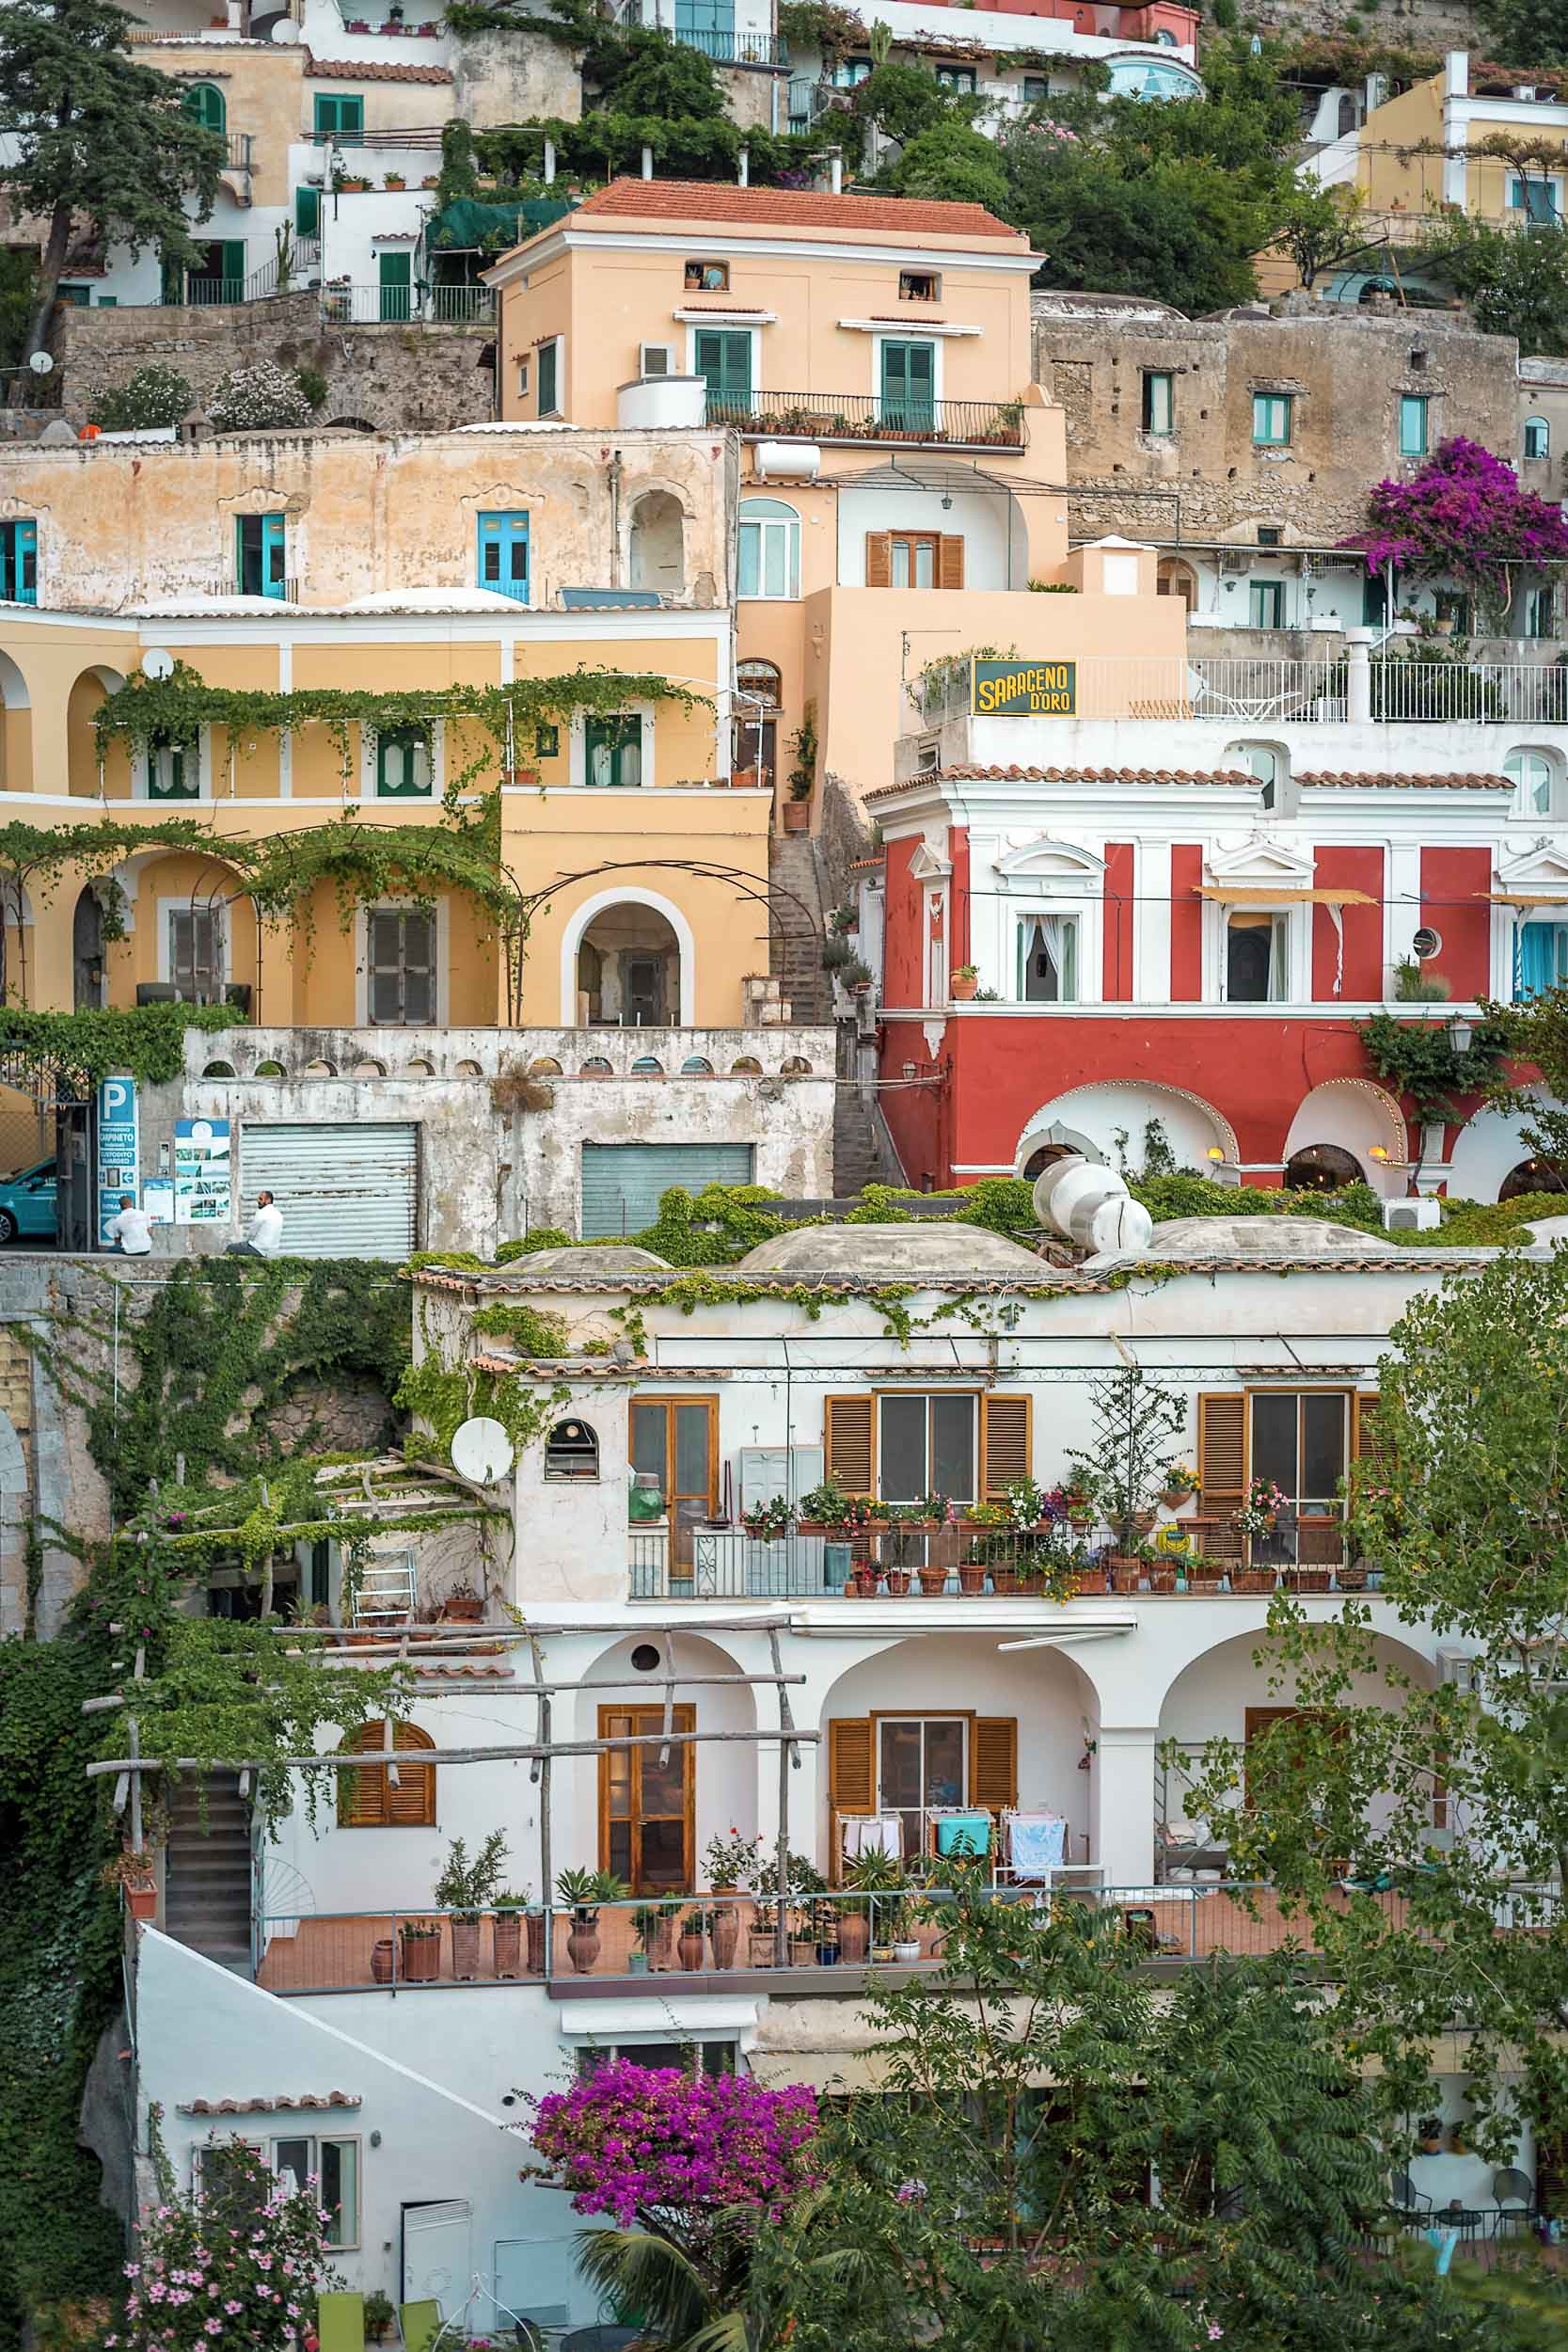 Dimora del Podesta (red) is the best inexpensive place to stay in Positano, Italy